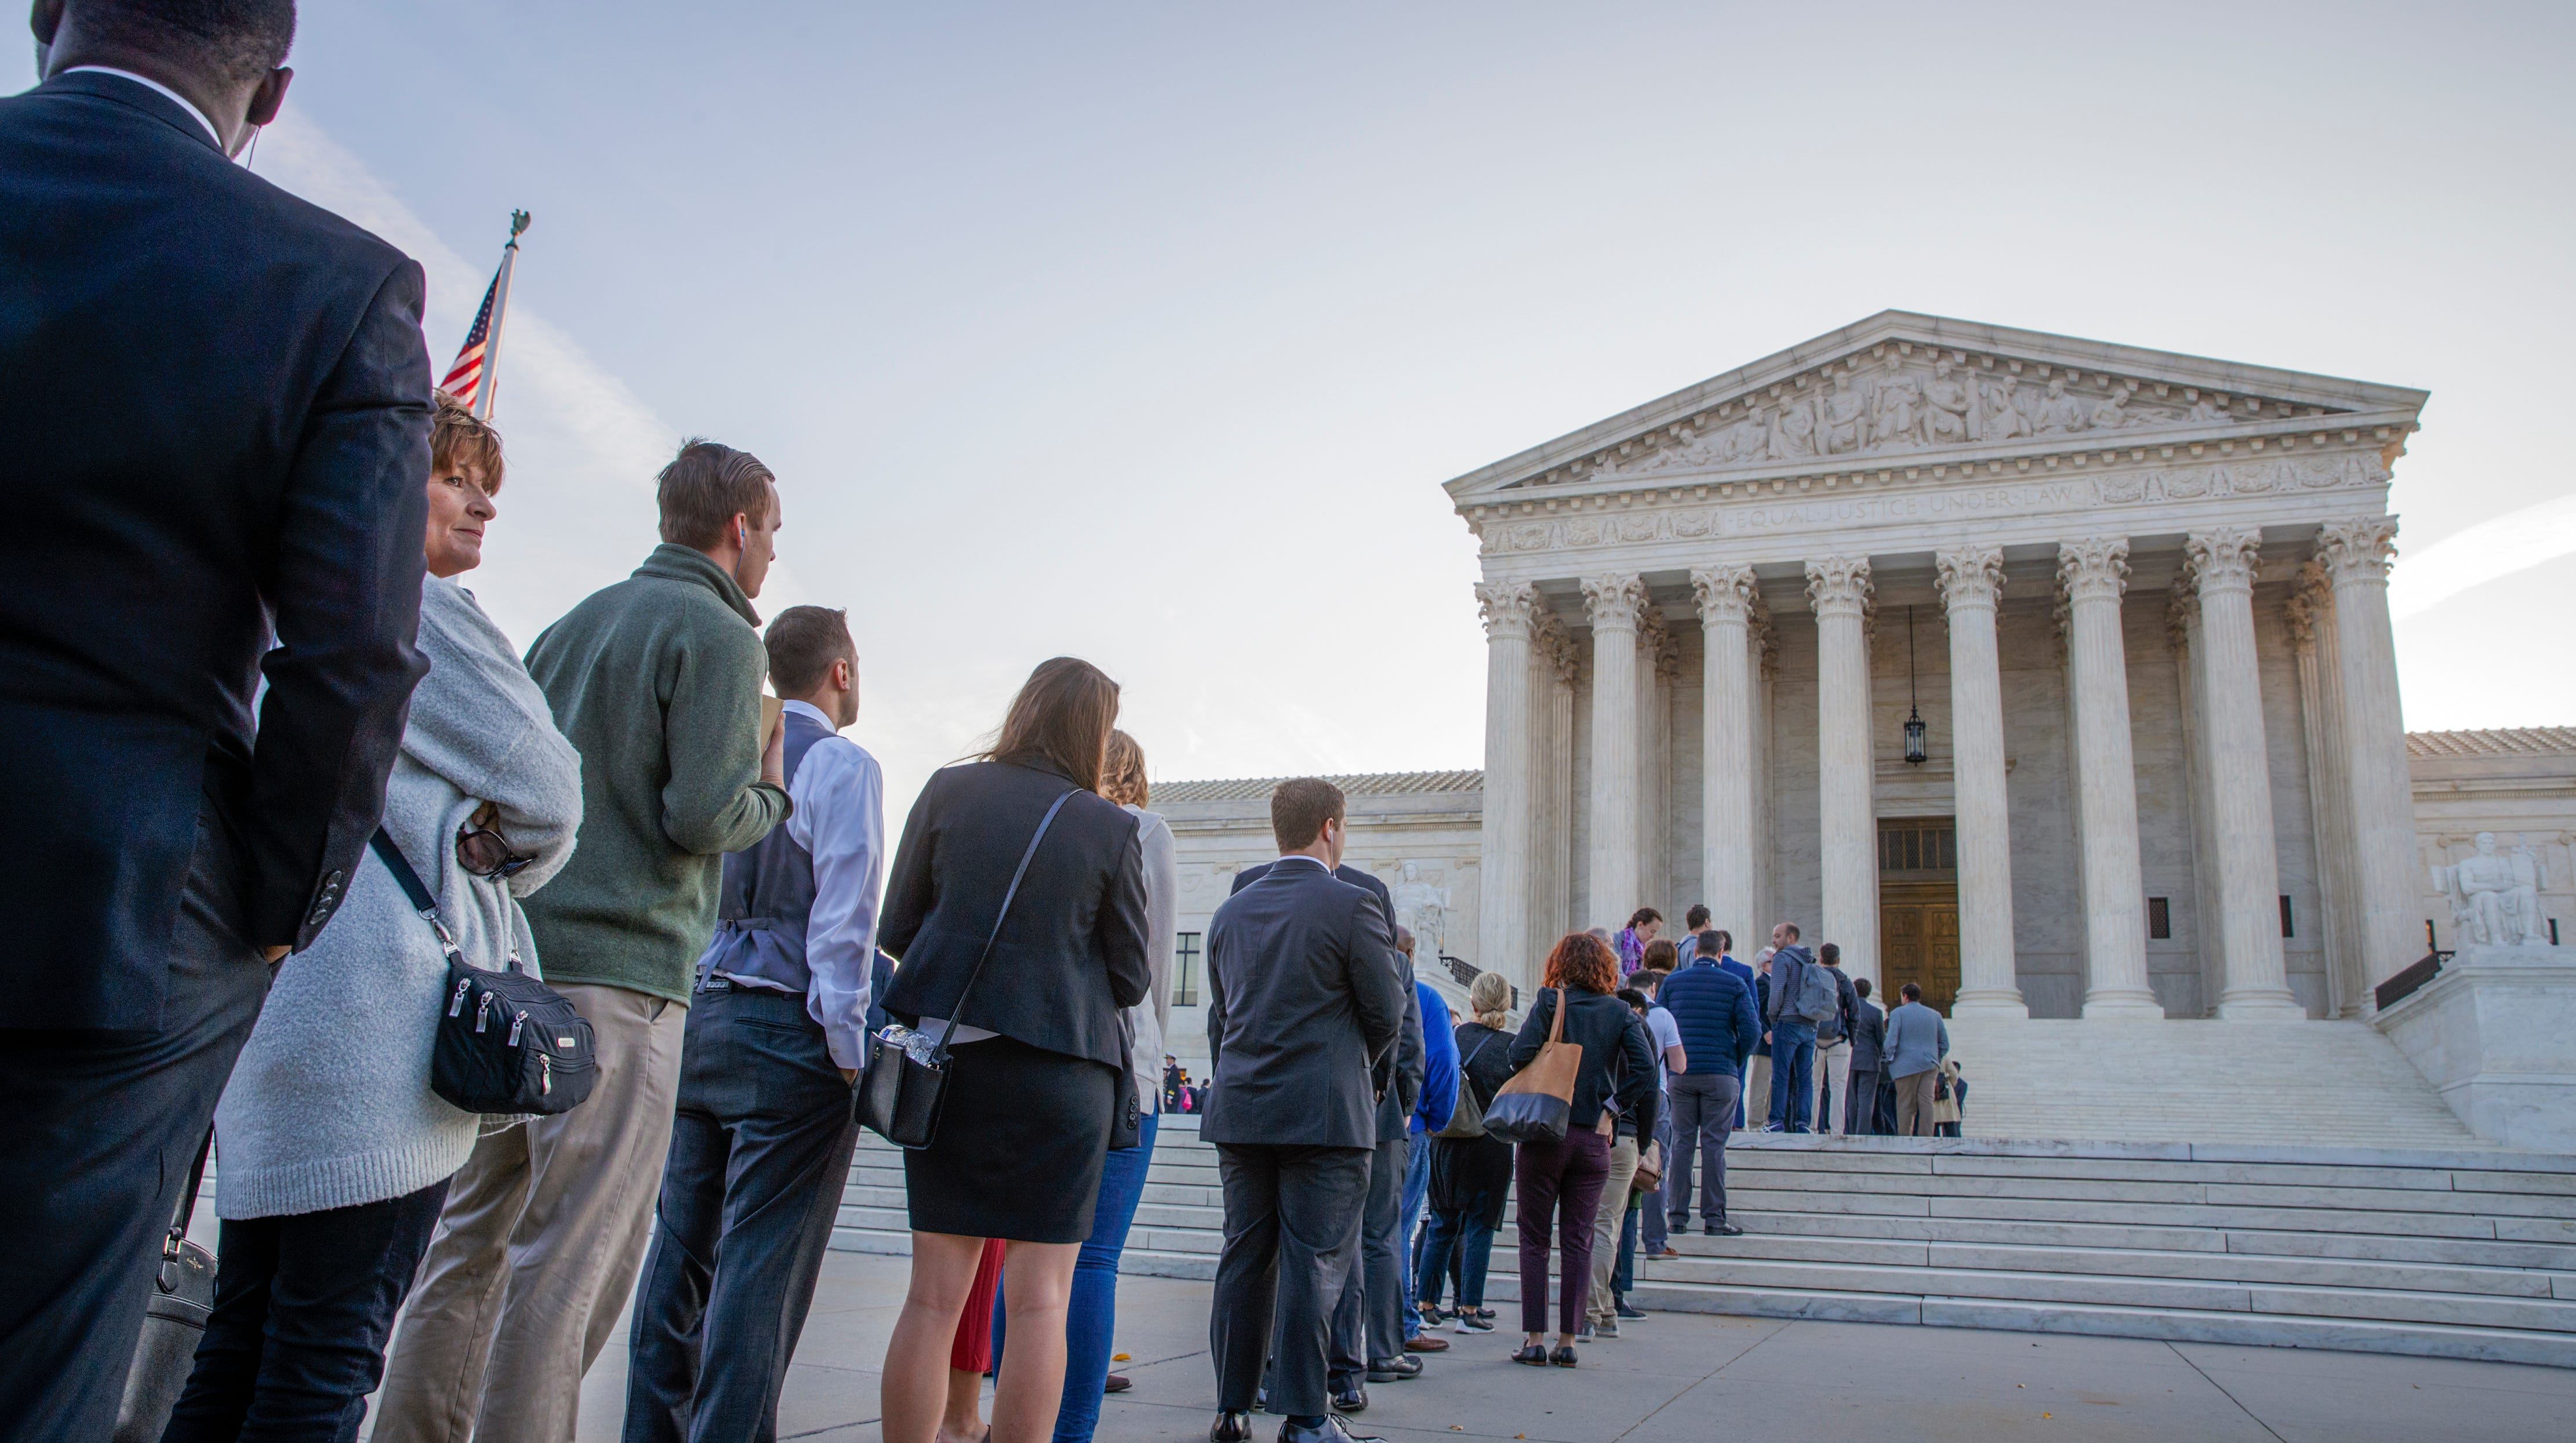 Supreme Court: Conservative groups see opportunities to cut regulation, shore up property rights